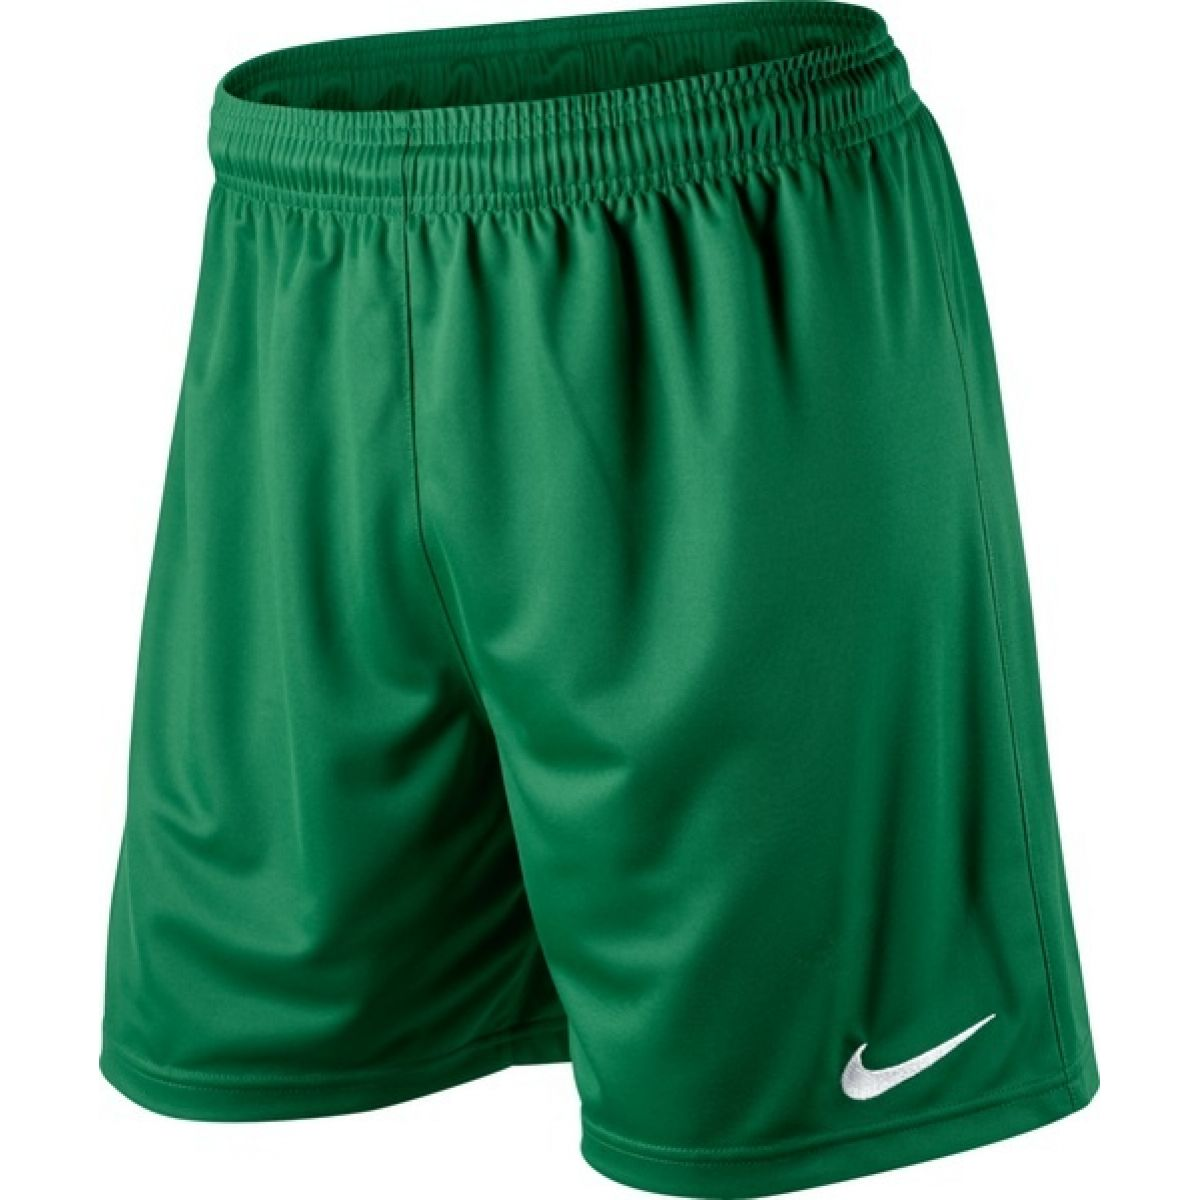 SPODENKI NIKE PARK KNIT SHORT JR 448263-302 XL/164